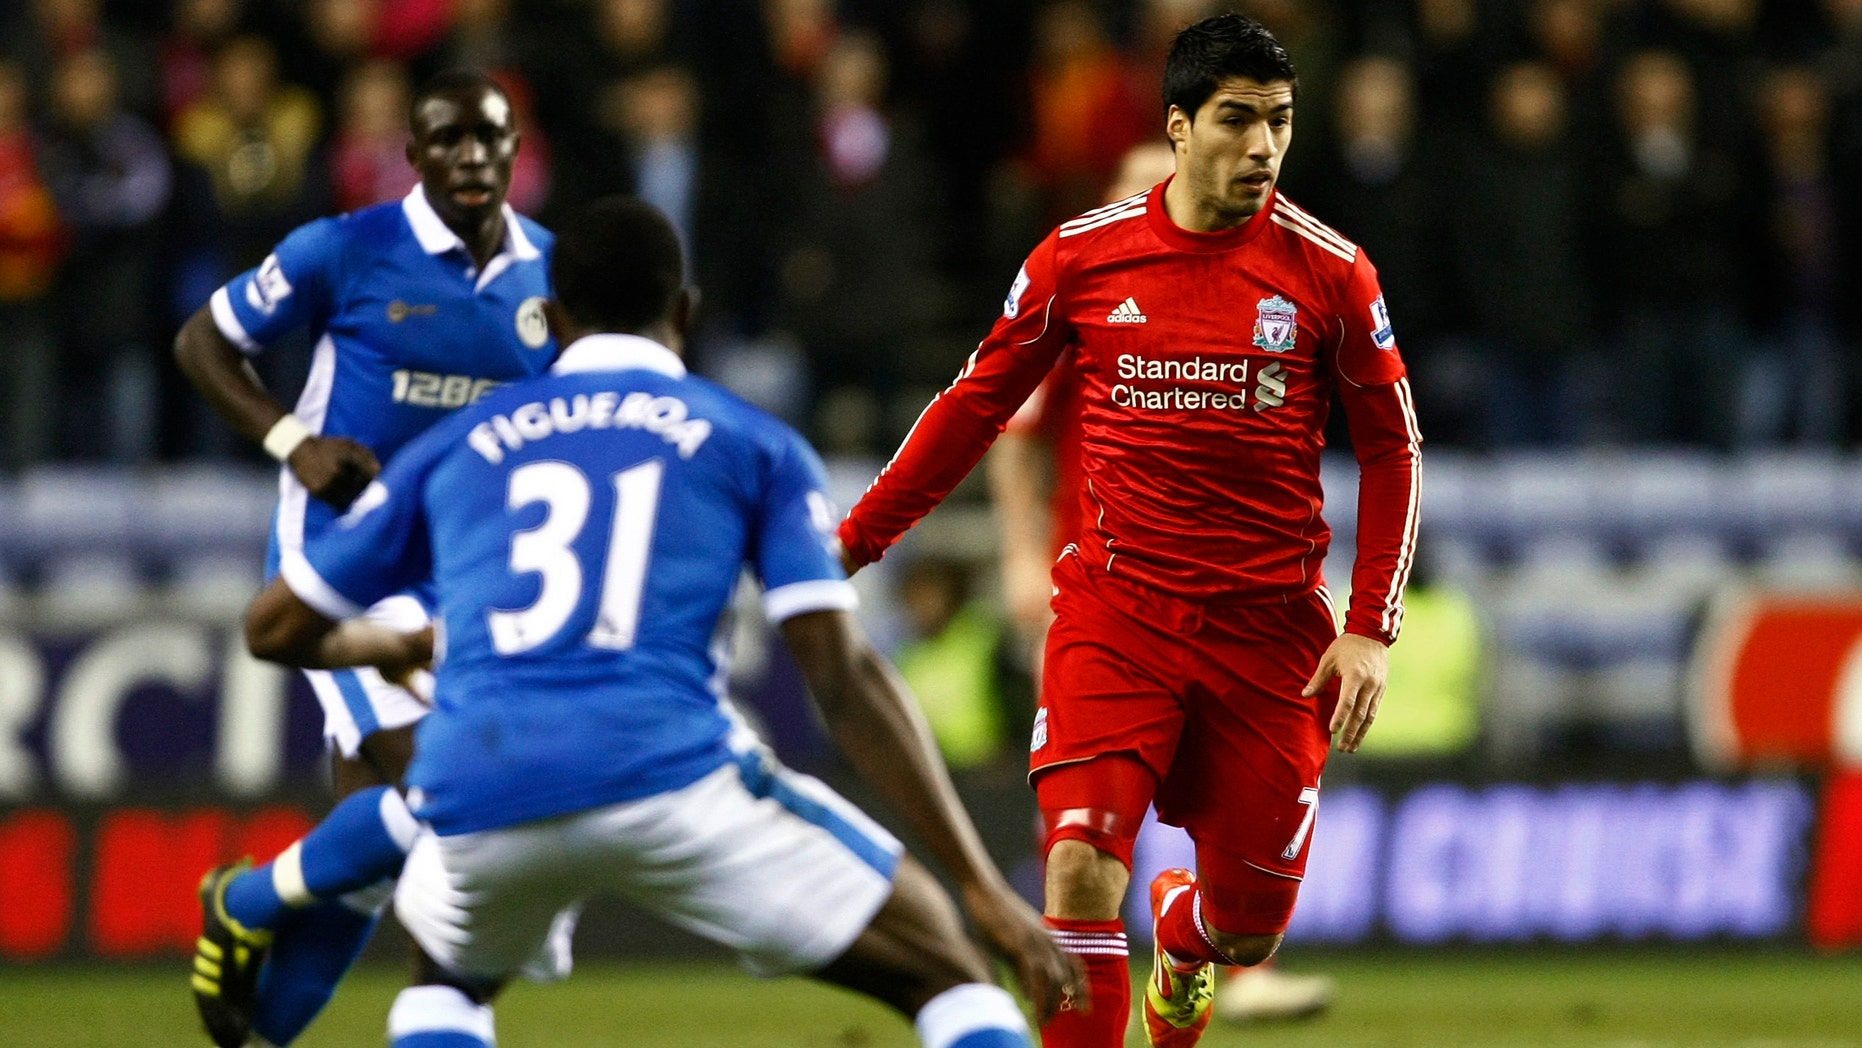 Liverpool's Luis Suarez, right, vies for the ball against Wigan's Maynor Figueroa, center, during their English Premier League soccer match at DW Stadium, Wigan, England, Wednesday Dec. 21, 2011. (AP Photo/Tim Hales)